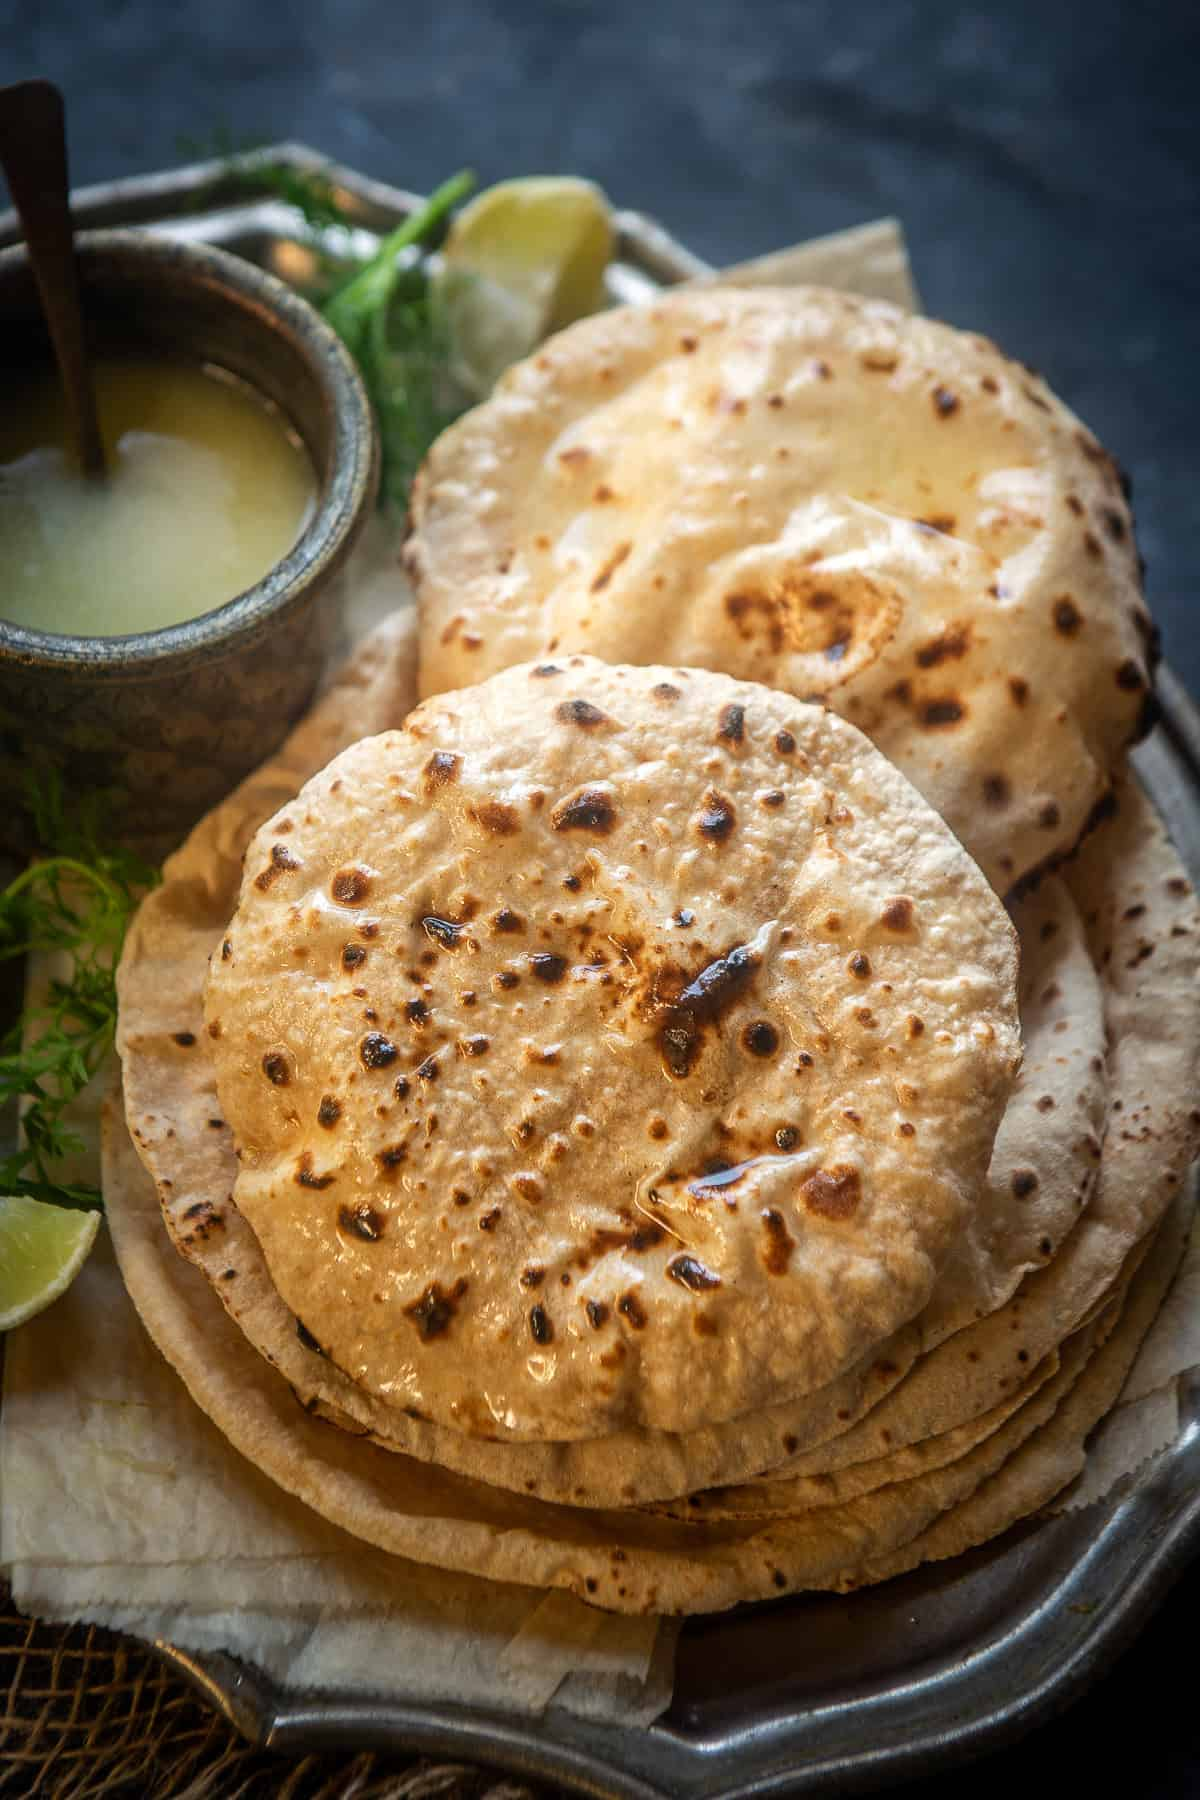 Roti served on a plate.